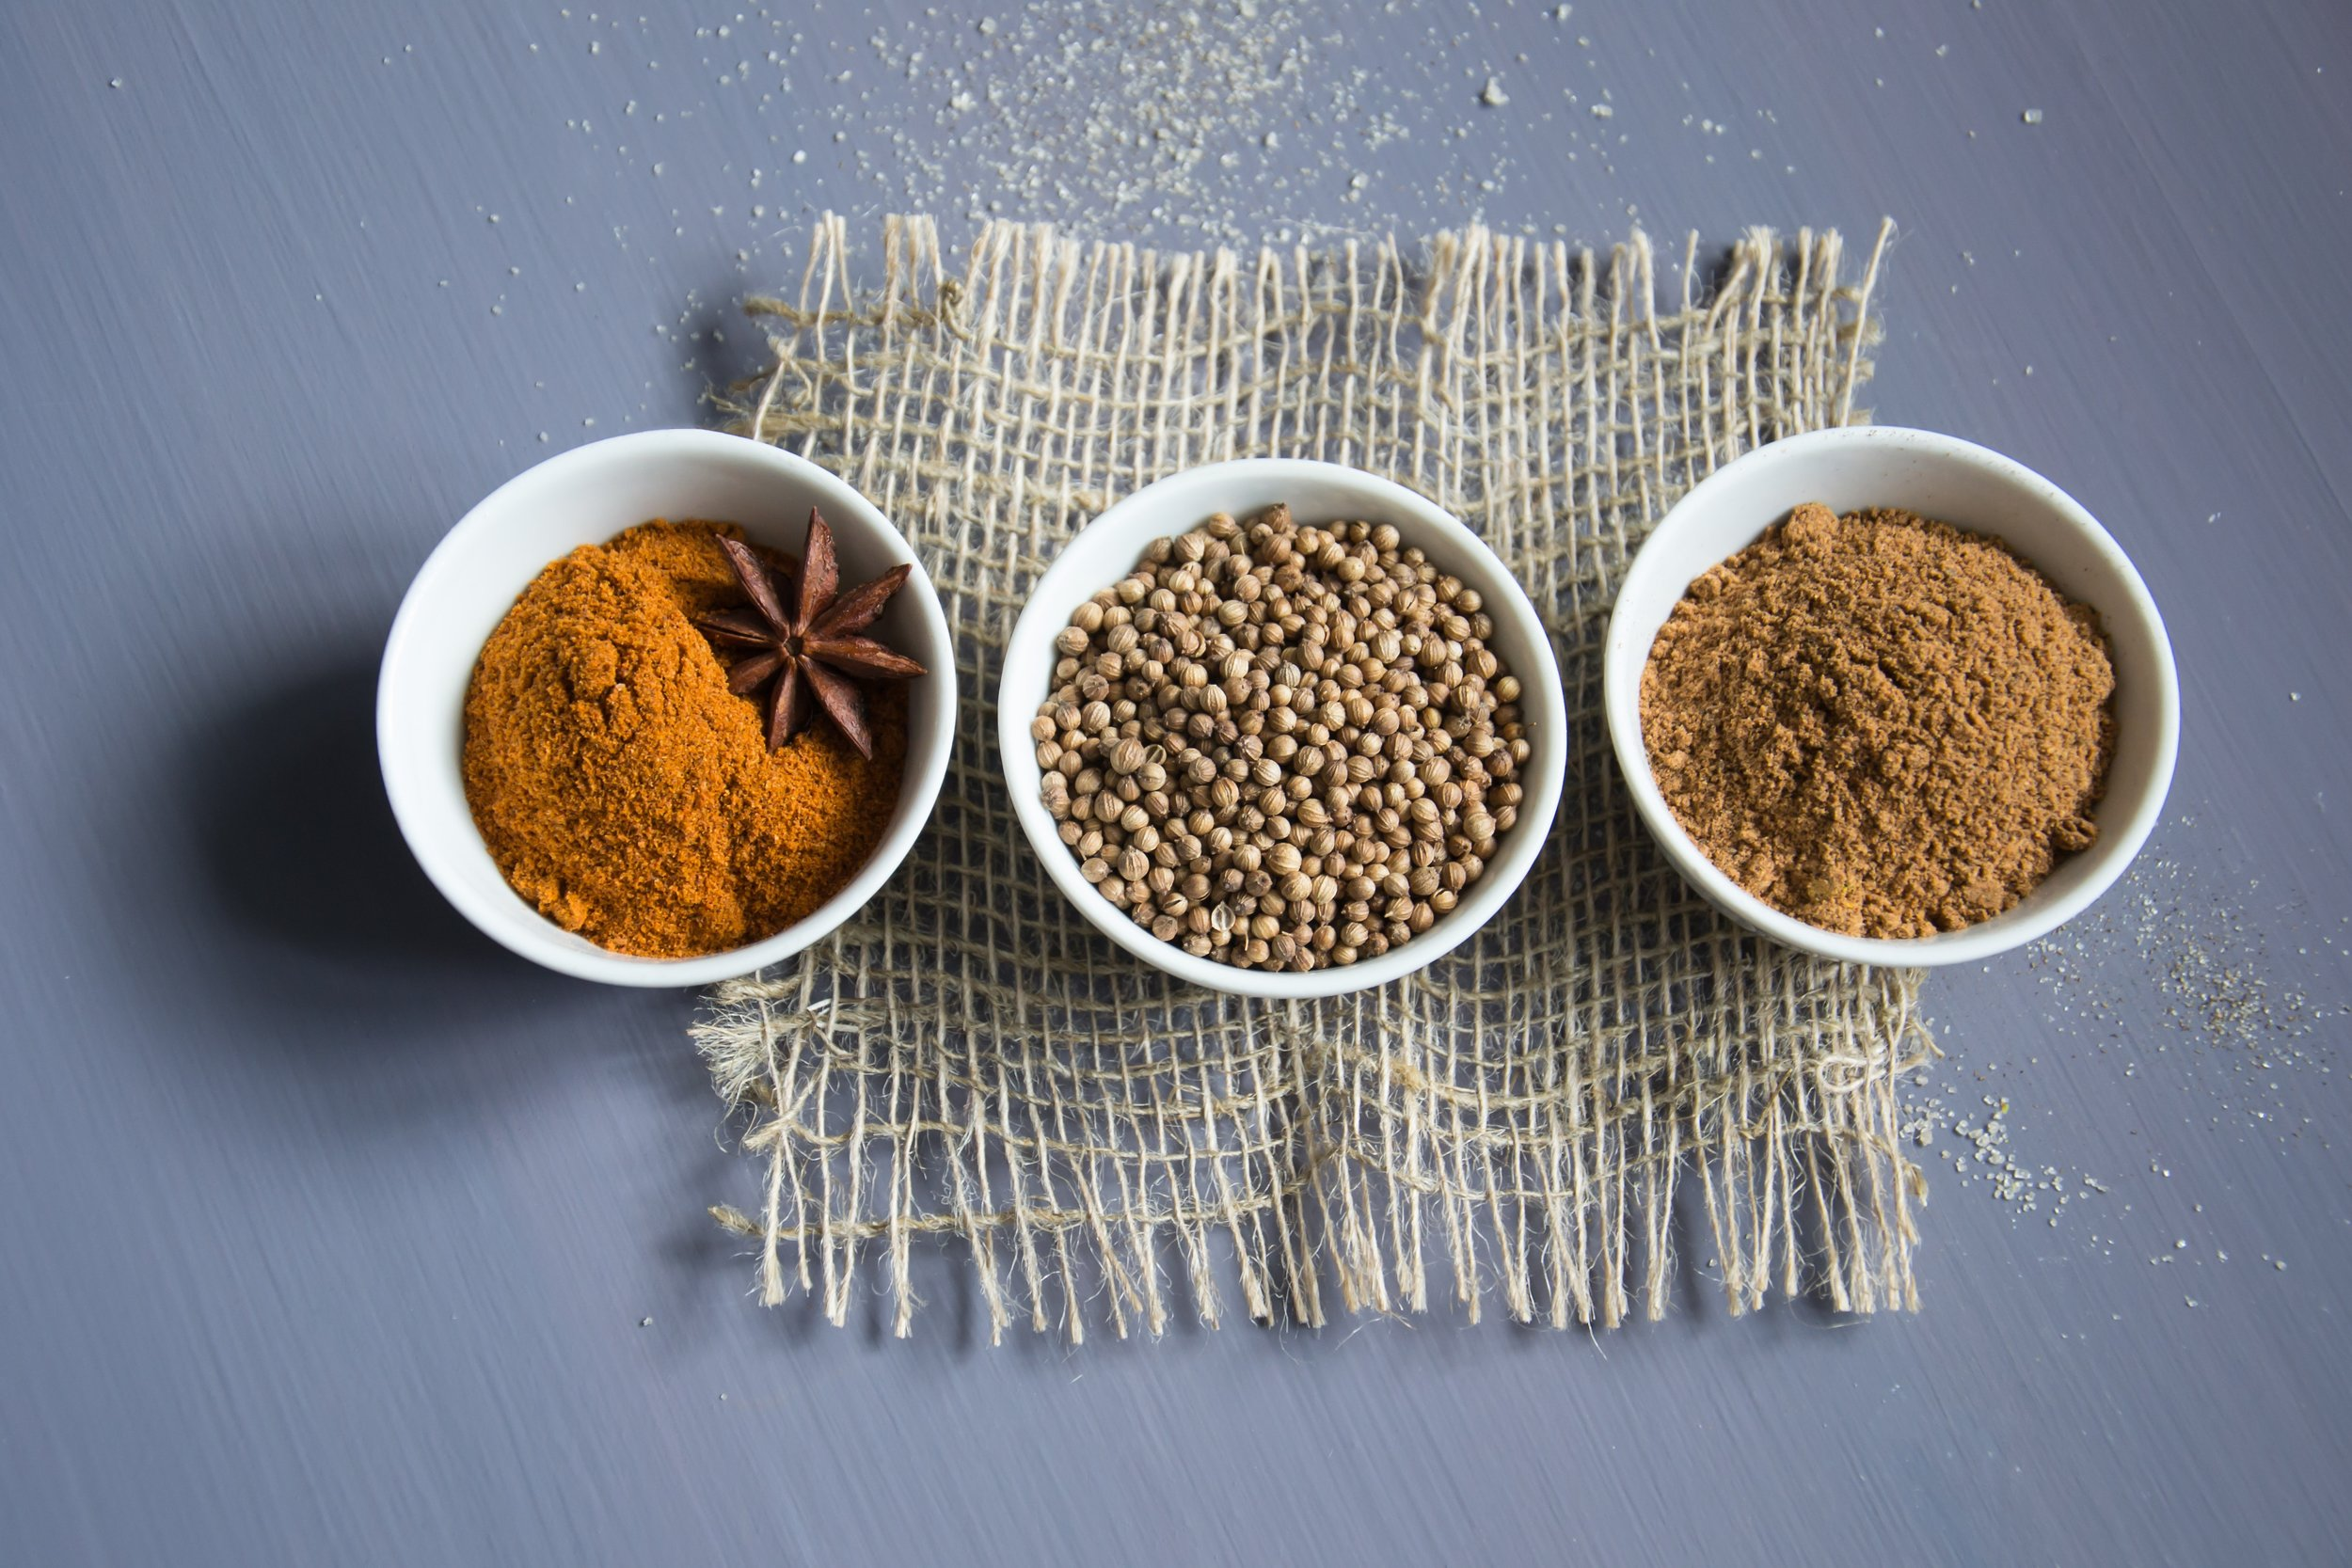 Spices2_LeJuicery.jpg